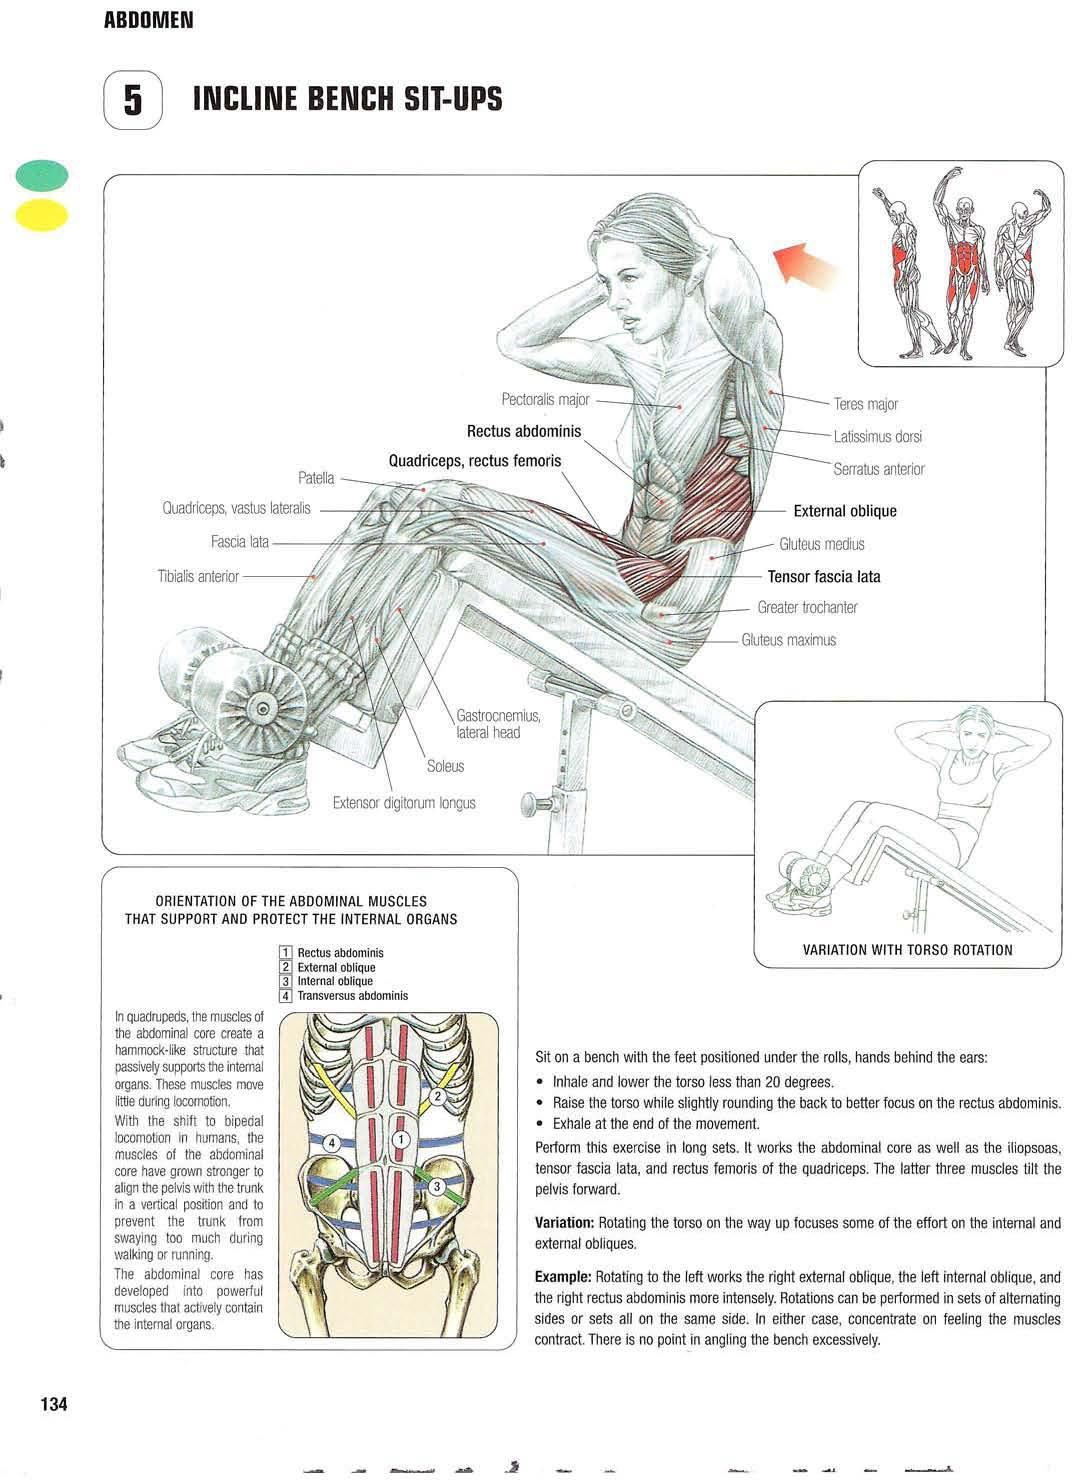 Strength training anatomy 5. Incline bench sit-ups Abs, core, six ...